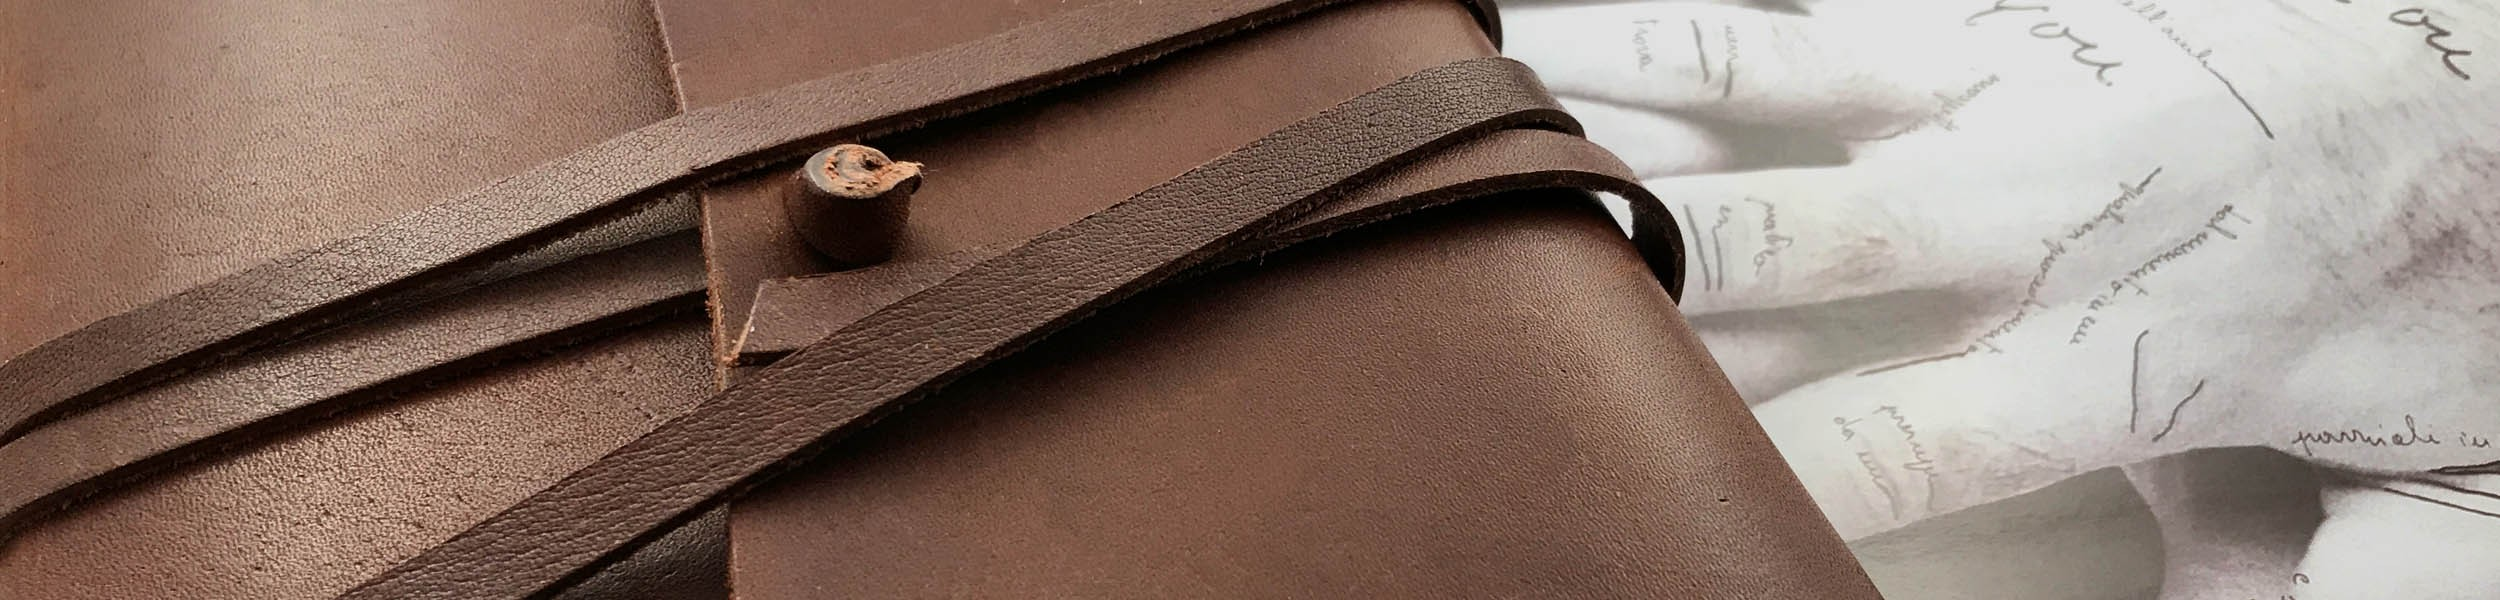 Handmade leather journals, photo albums and writing accessories.